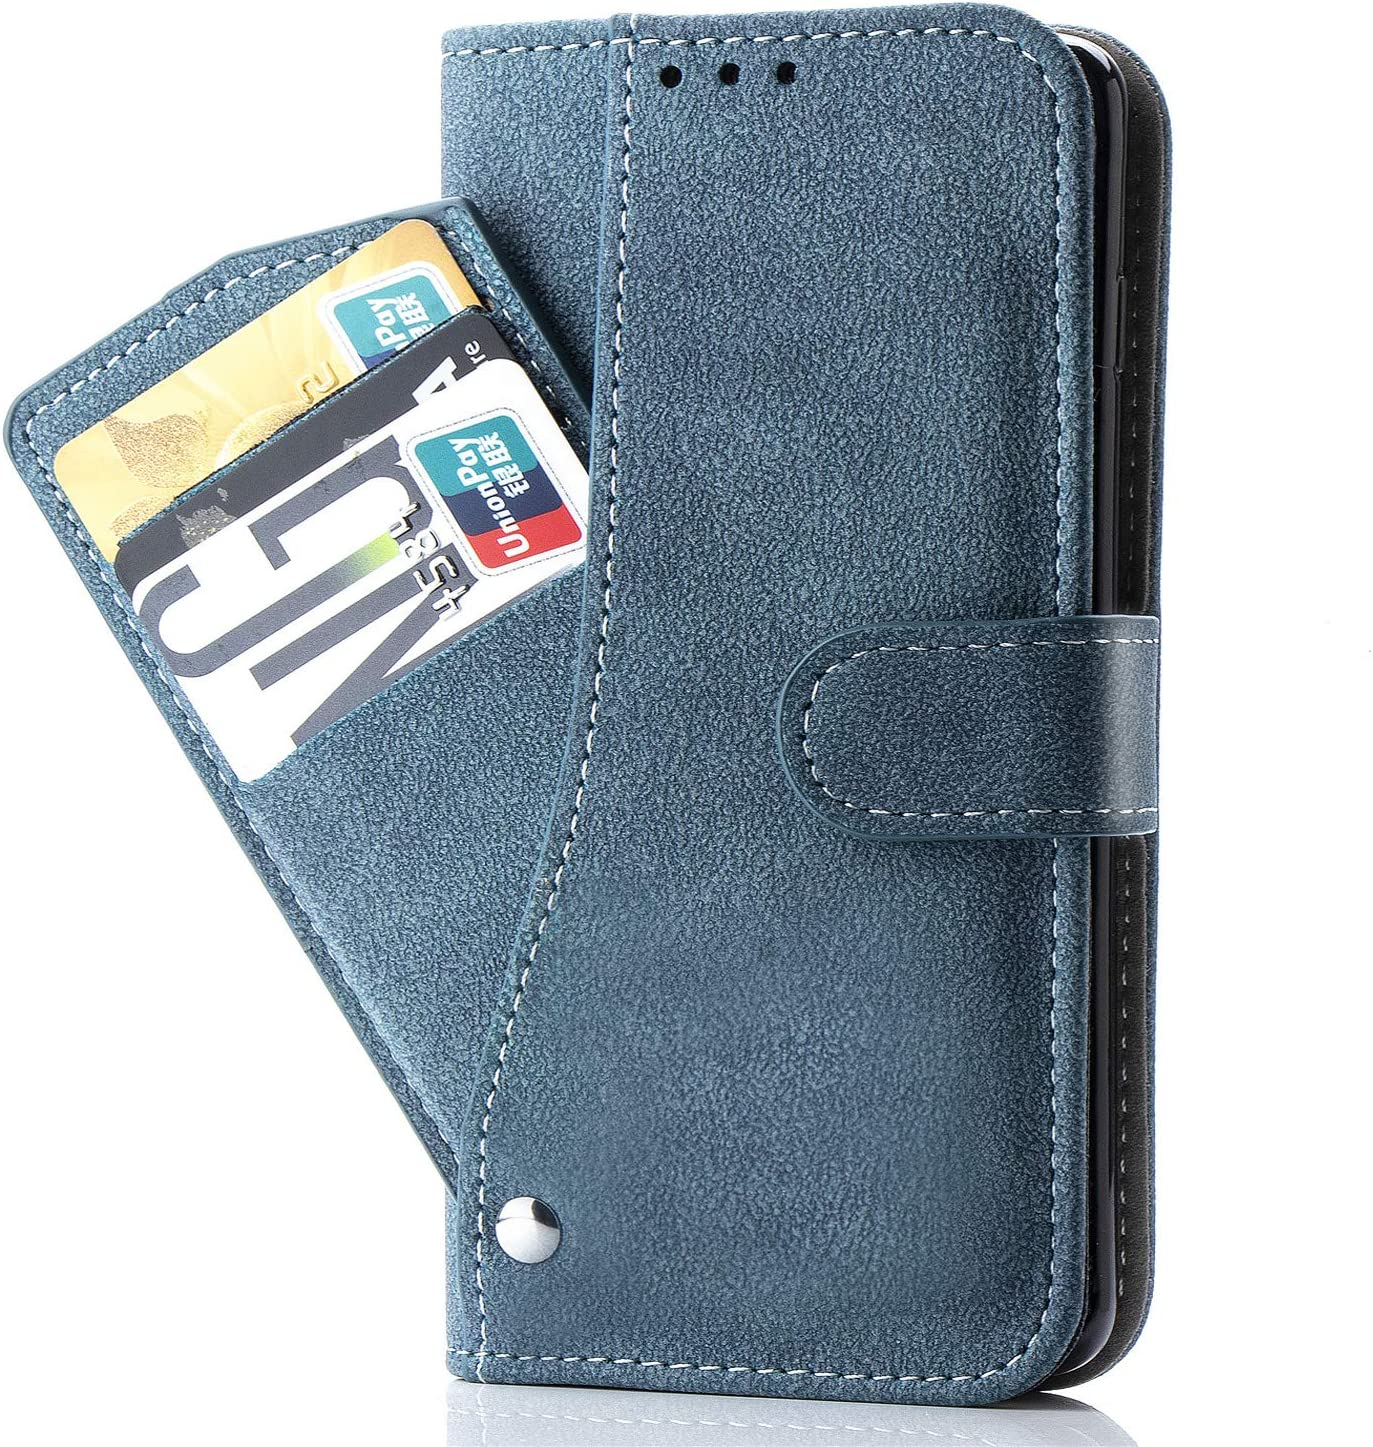 LG G7 Case,LG G7 ThinQ Case,Luxury Leather Wallet Phone Cases with Credit Card Holder Slim Kickstand Stand Flip Folio Protective Cover for LG G7 ThinQ Women Girls Men Blue